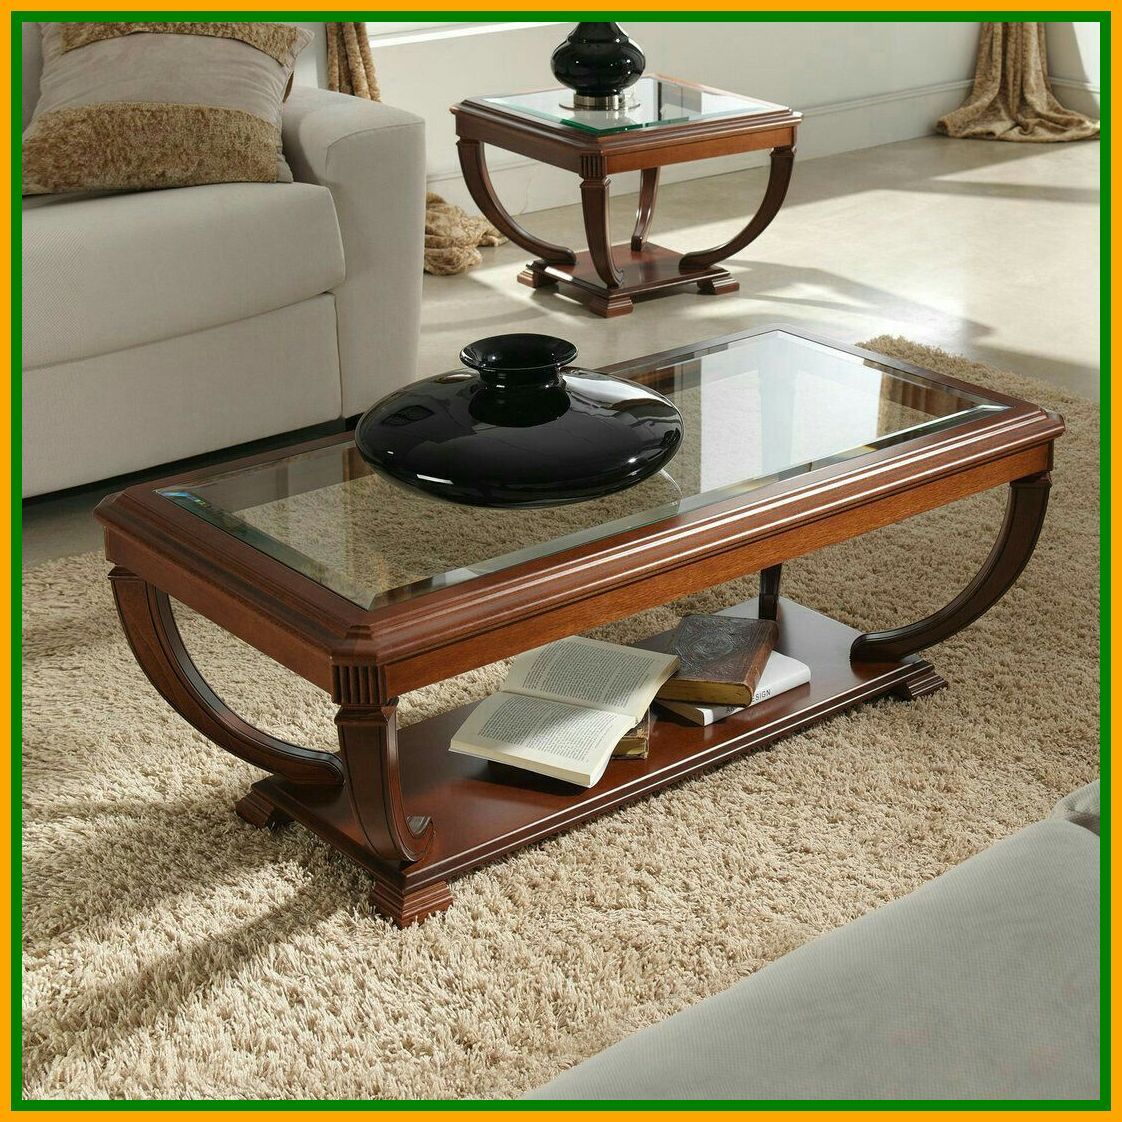 72 Reference Of Sofa Table Glass Design In 2020 Coffee Table Centre Table Design Center Table Living Room